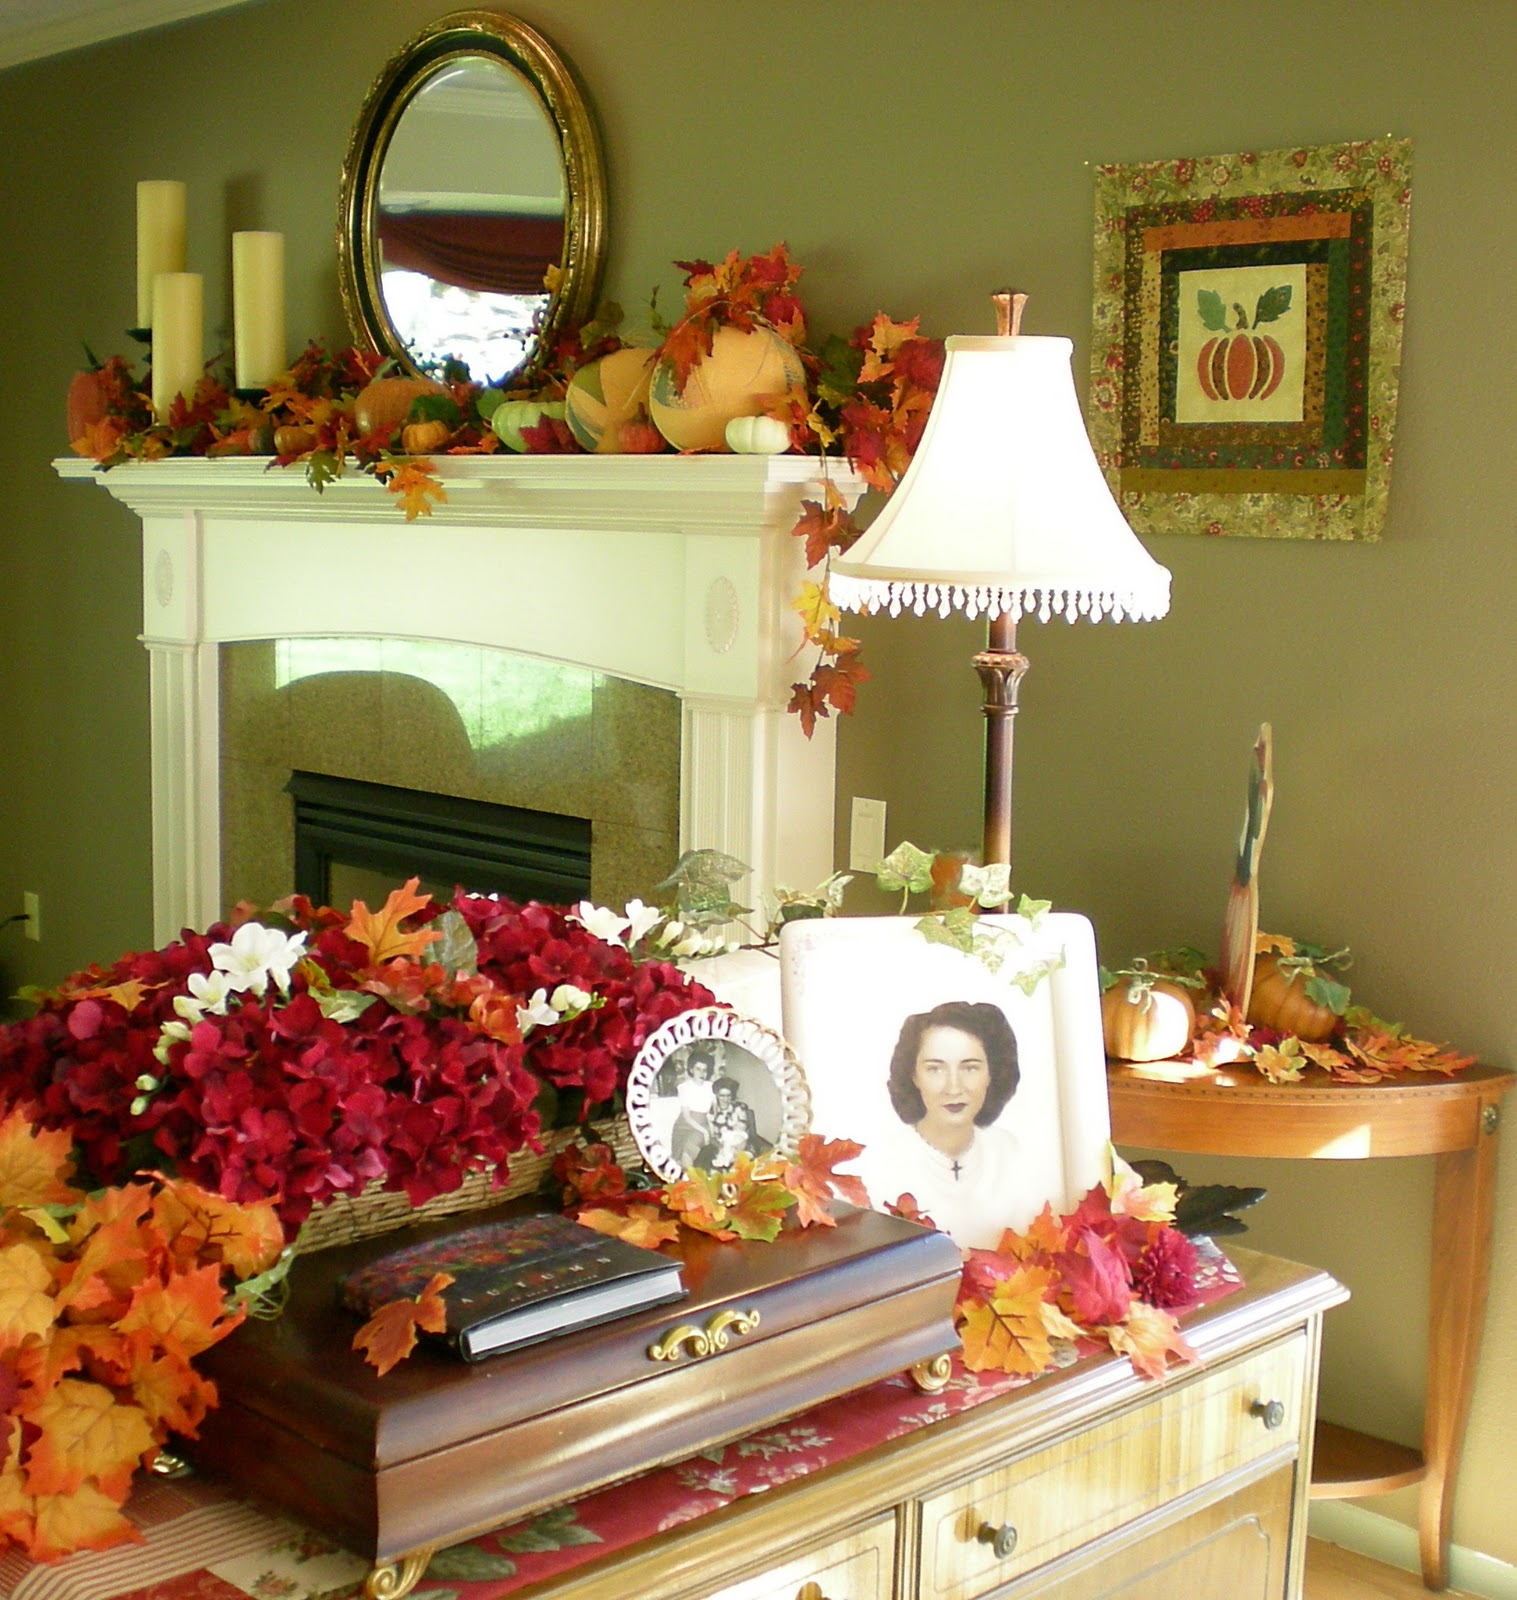 Fall Decorating Ideas Pictures  Photos  And Images For Facebook  Tumblr  Pinterest  And Twitter